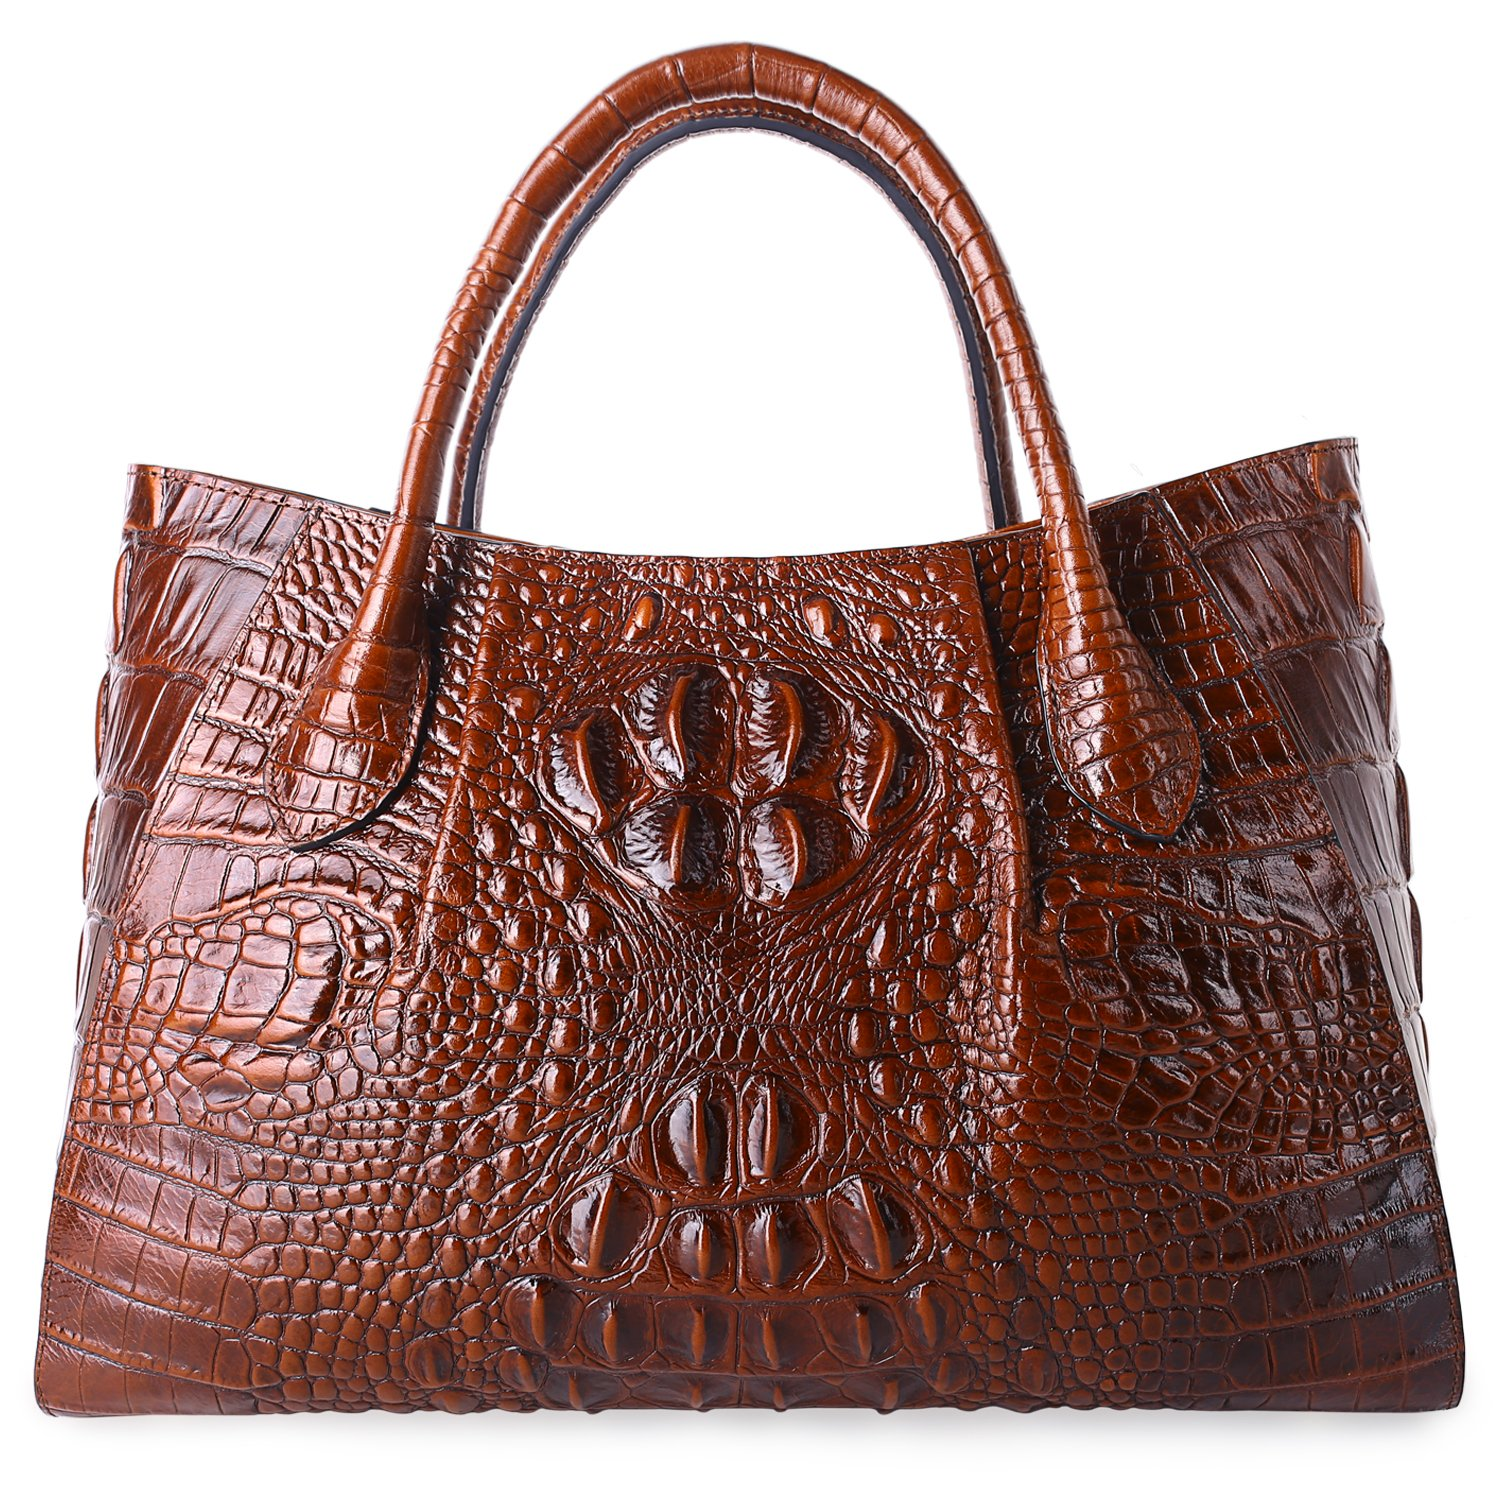 PIFUREN Designer Crocodile Top Handle Handbags Womens Genuine Leather Tote Bags 5002A Brown by PIFUREN